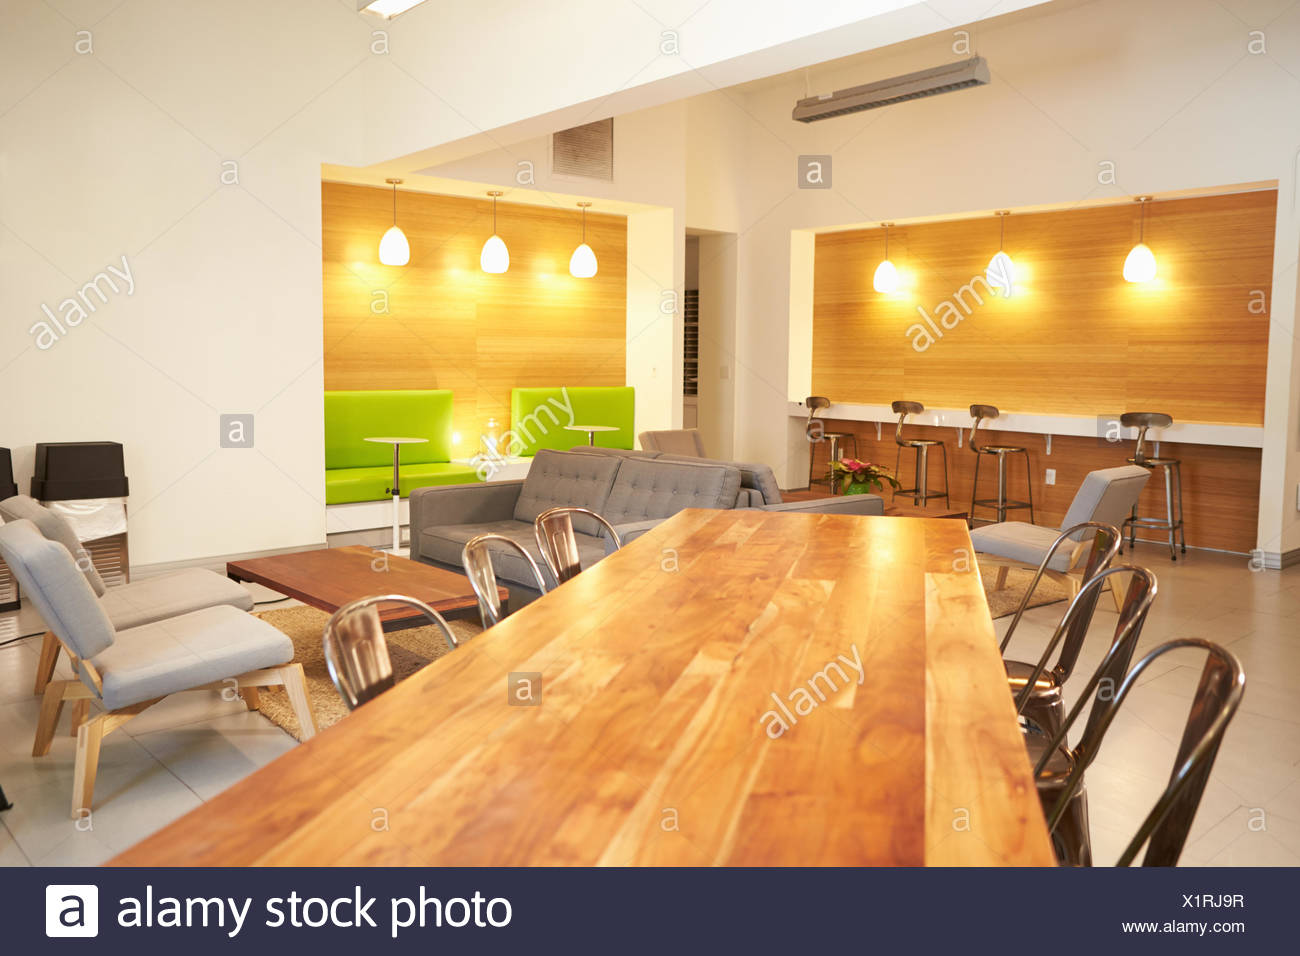 Empty Relaxation Area In Design Studio - Stock Image